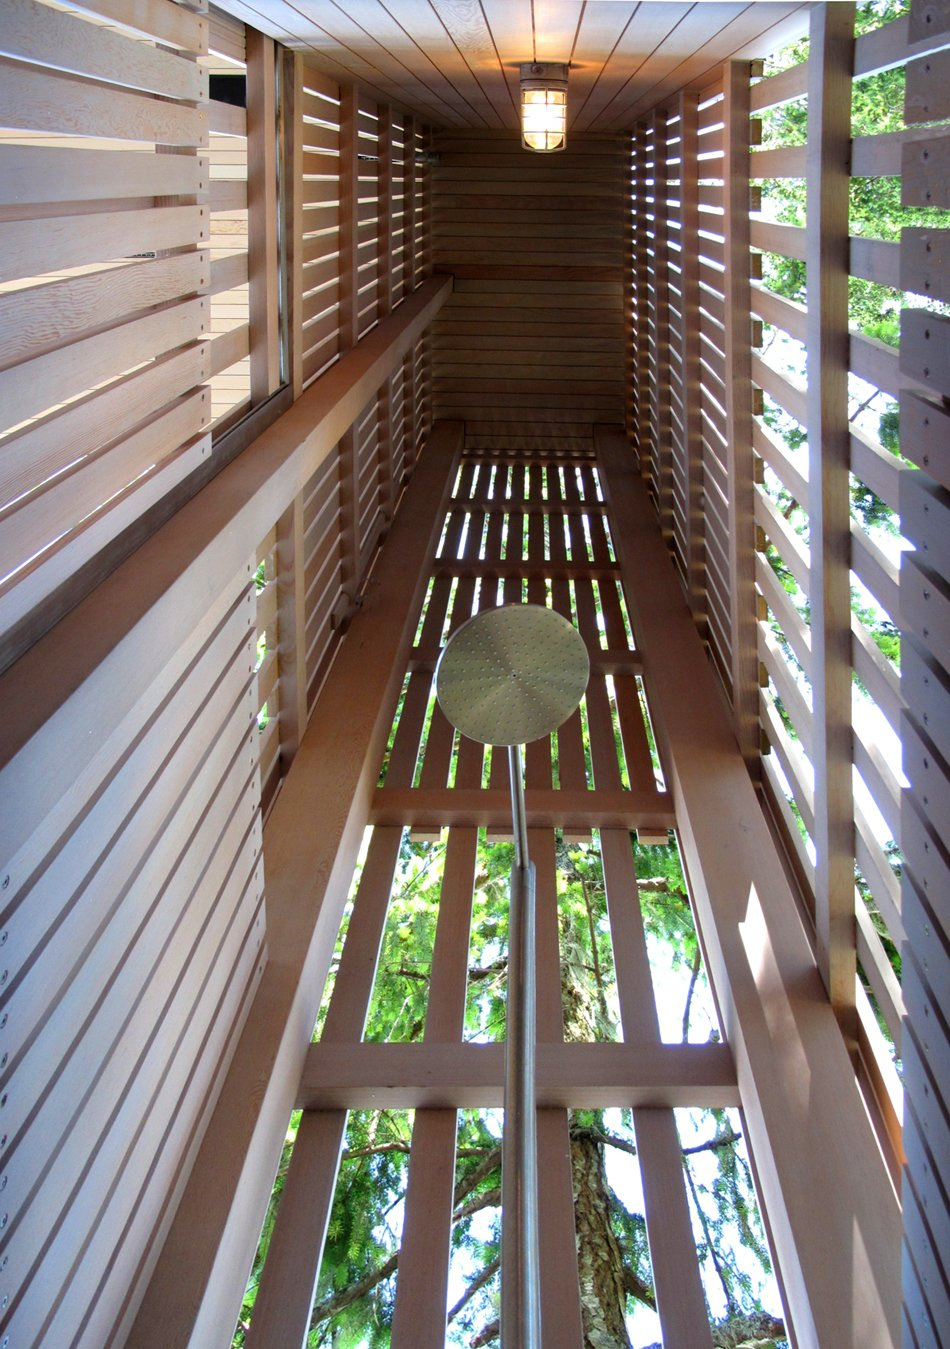 The Main house is clad in the local Douglas fir with deep protective eaves, stained grey to match the sun-bleached drift wood logs that litter the coast. Programmatic elements include like outdoor shower. #shower #outdoorshower #beachhouse #beachhouses #residentialarchitecture #residential #interstice #bradlaughton #britishcolumbia #vancouverisland #highceiling